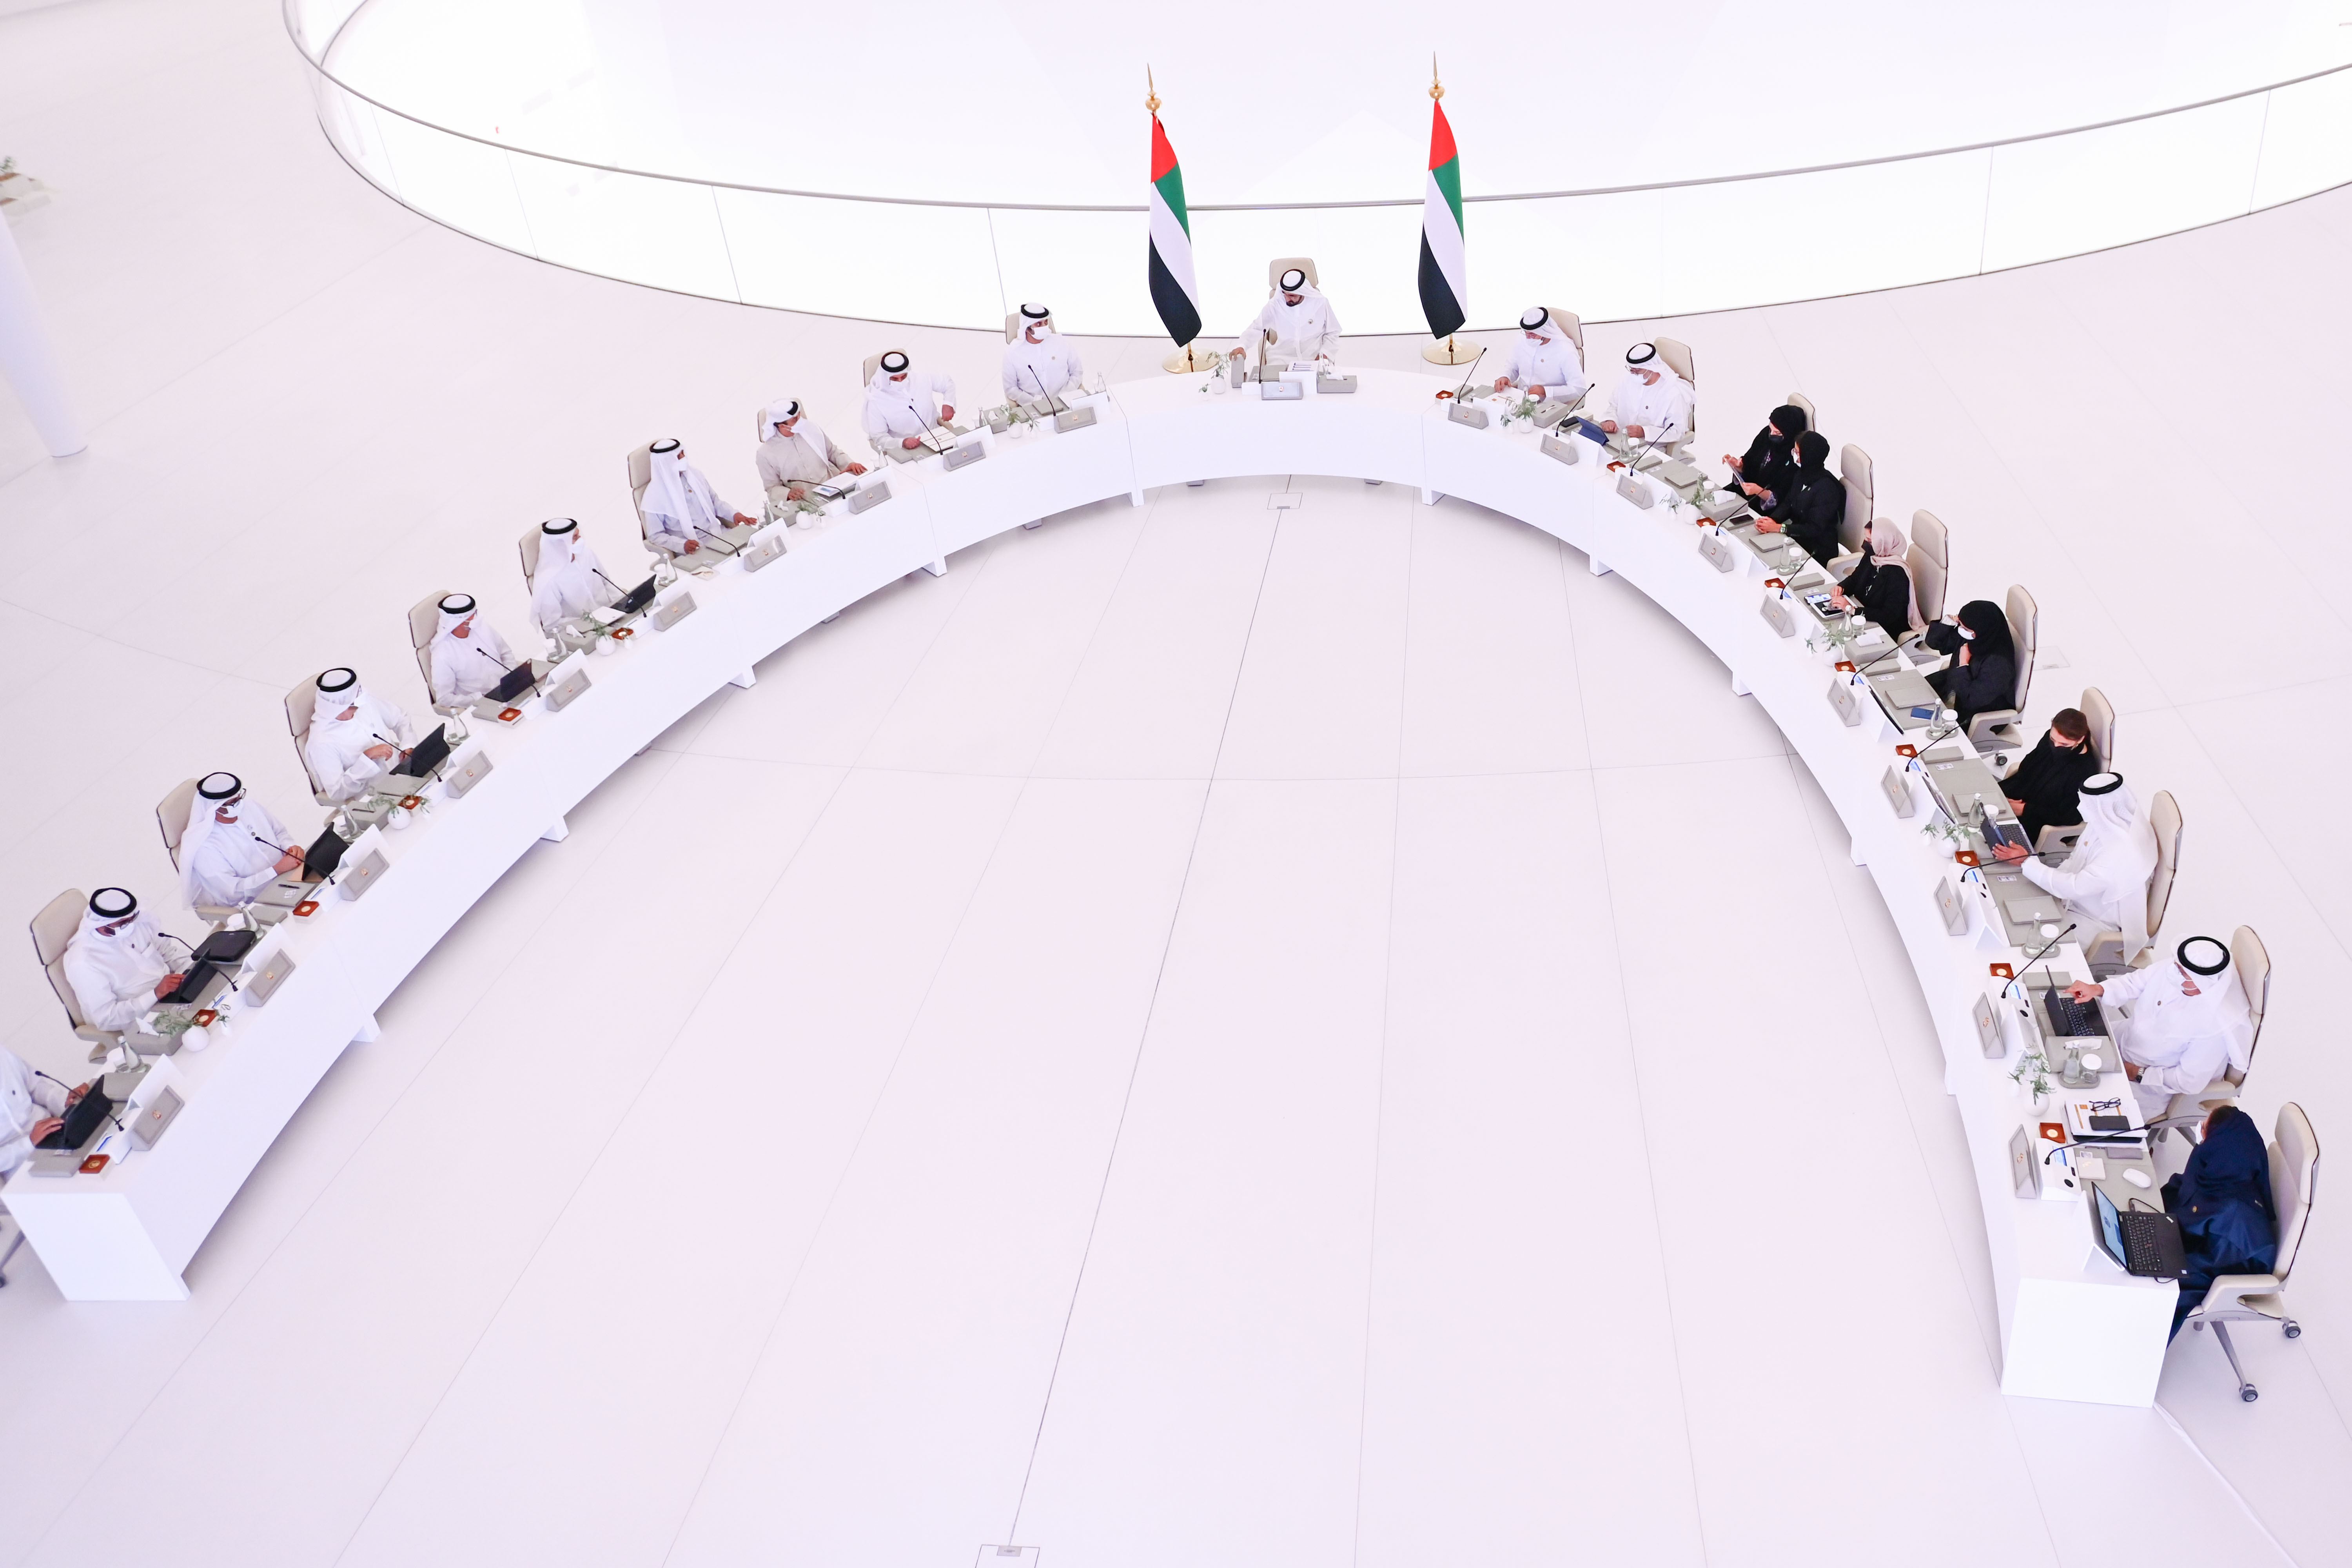 His Highness Sheikh Mohammed bin Rashid Al Maktoum - Mohammed bin Rashid approves UAE General Budget for 2022-2026 with AED290 billion expenditures